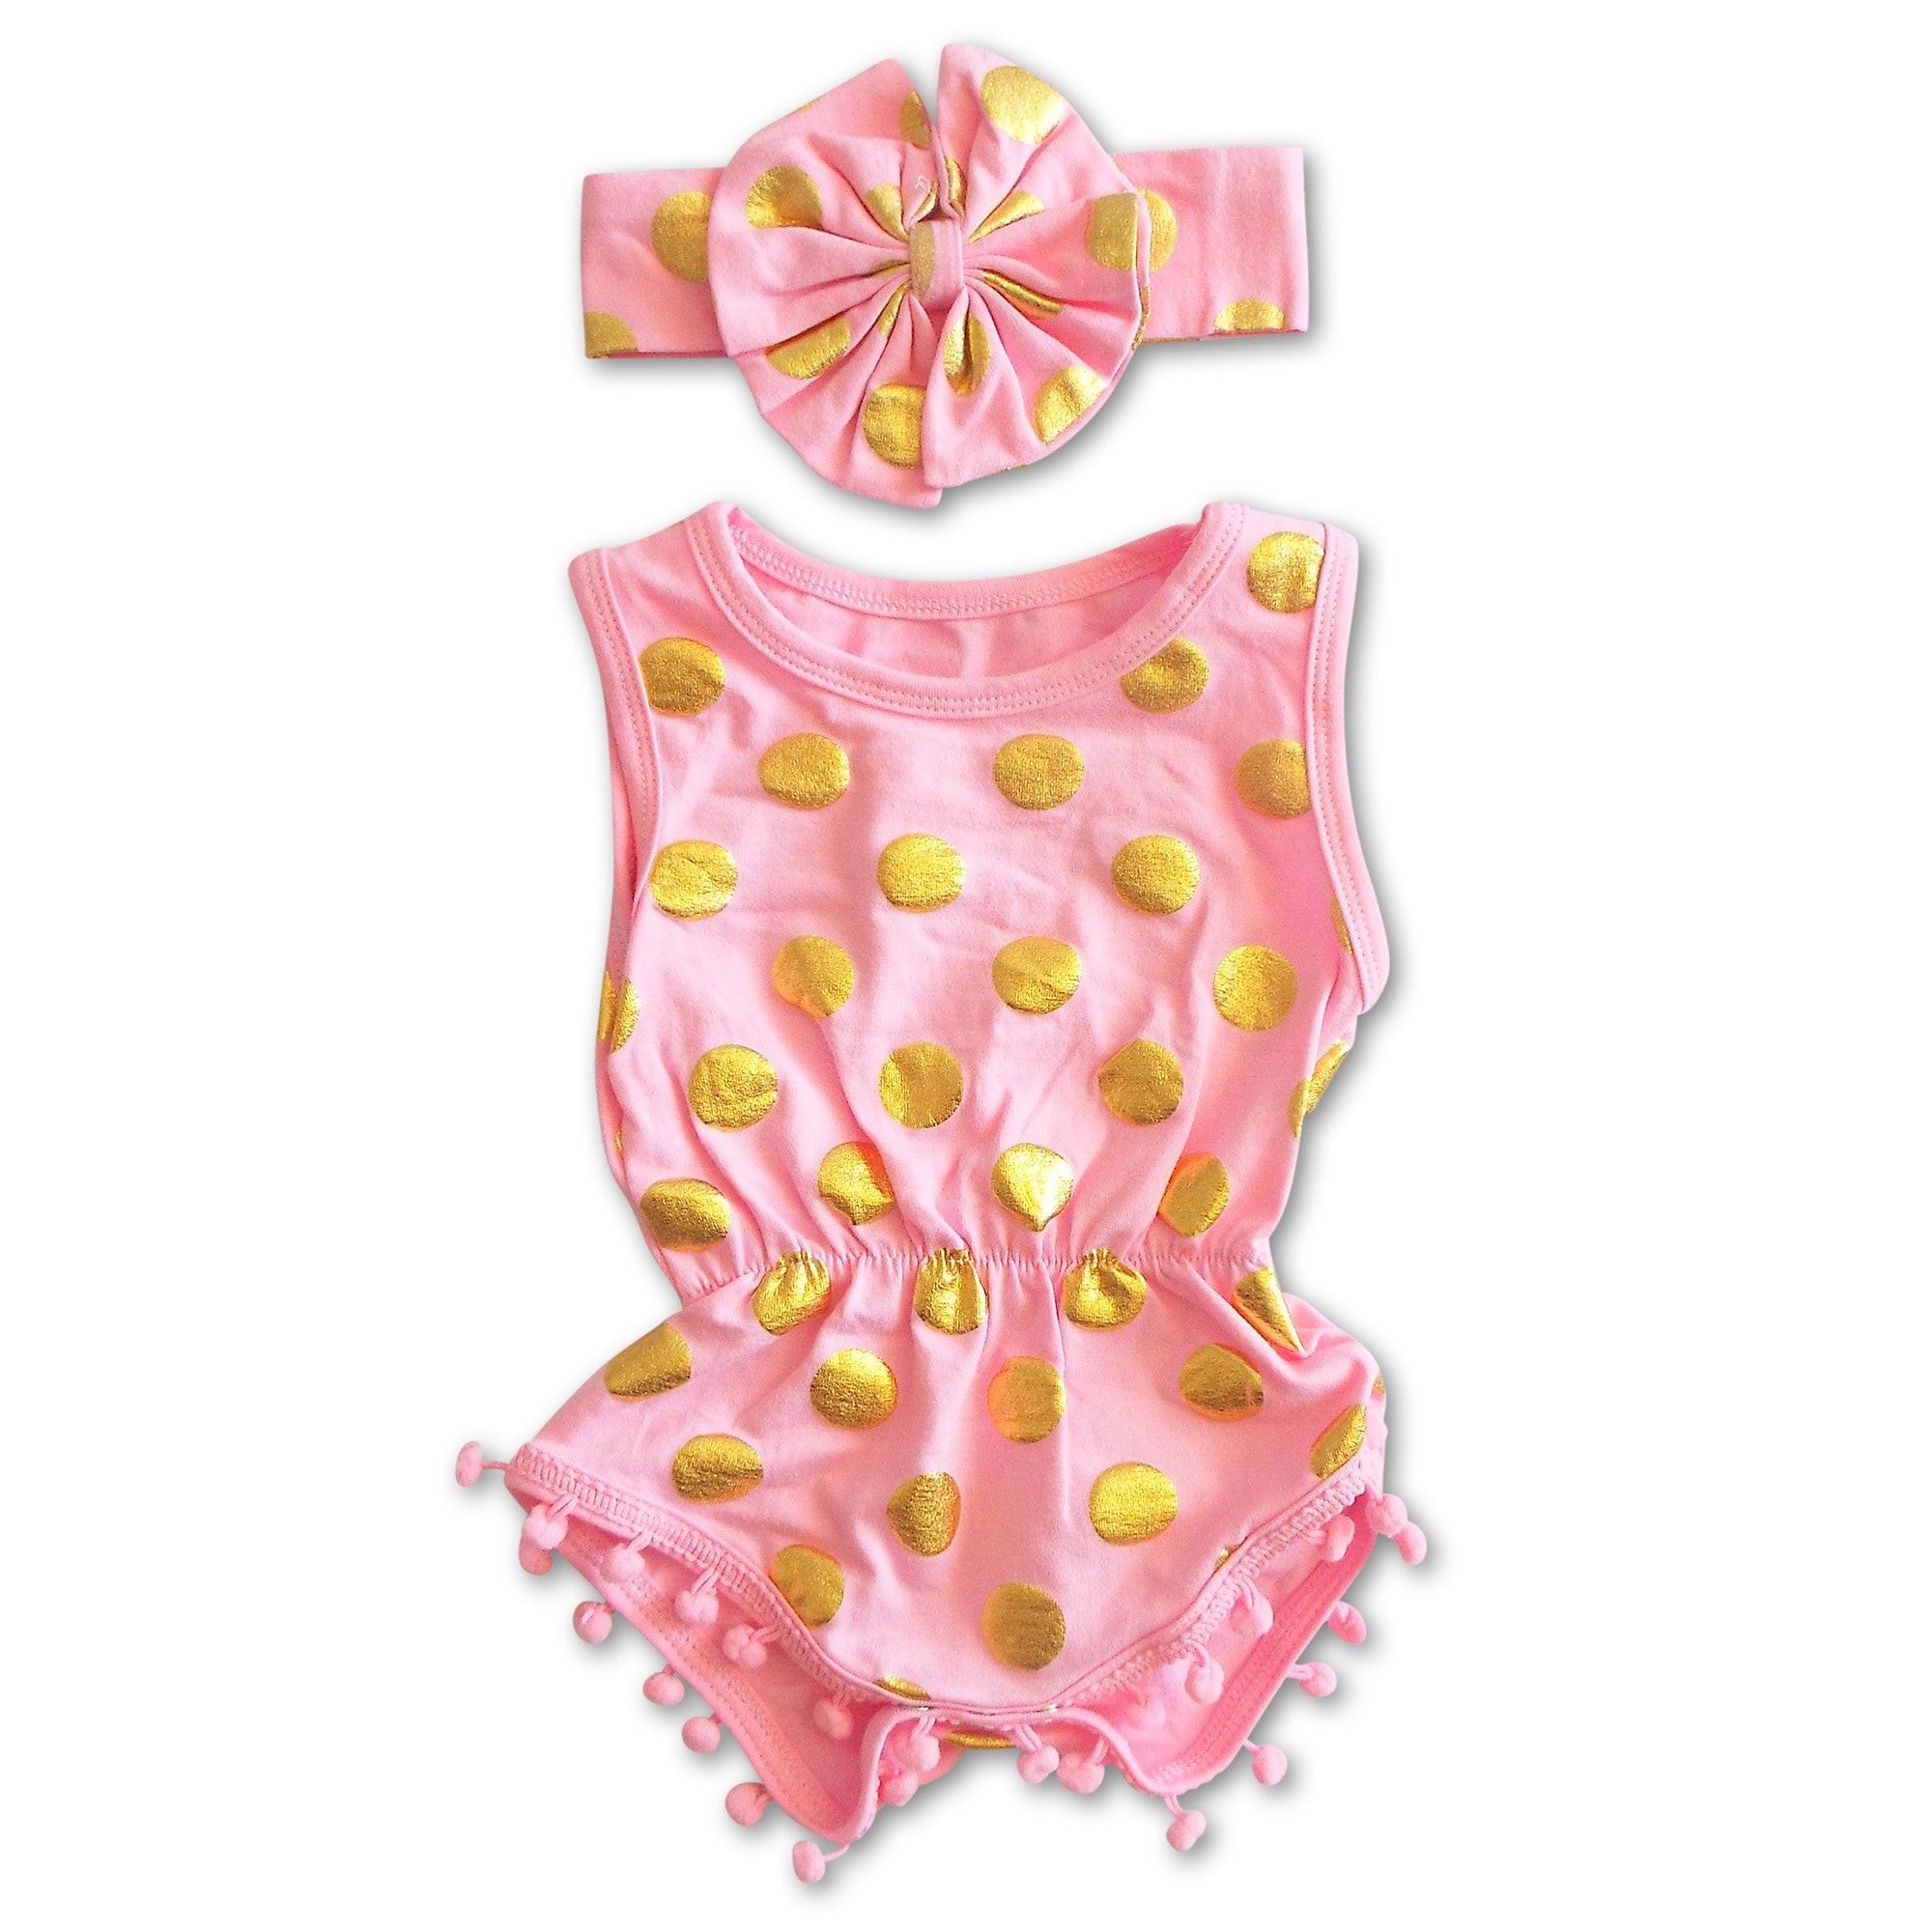 b7b18ccb941 pink and gold baby romper